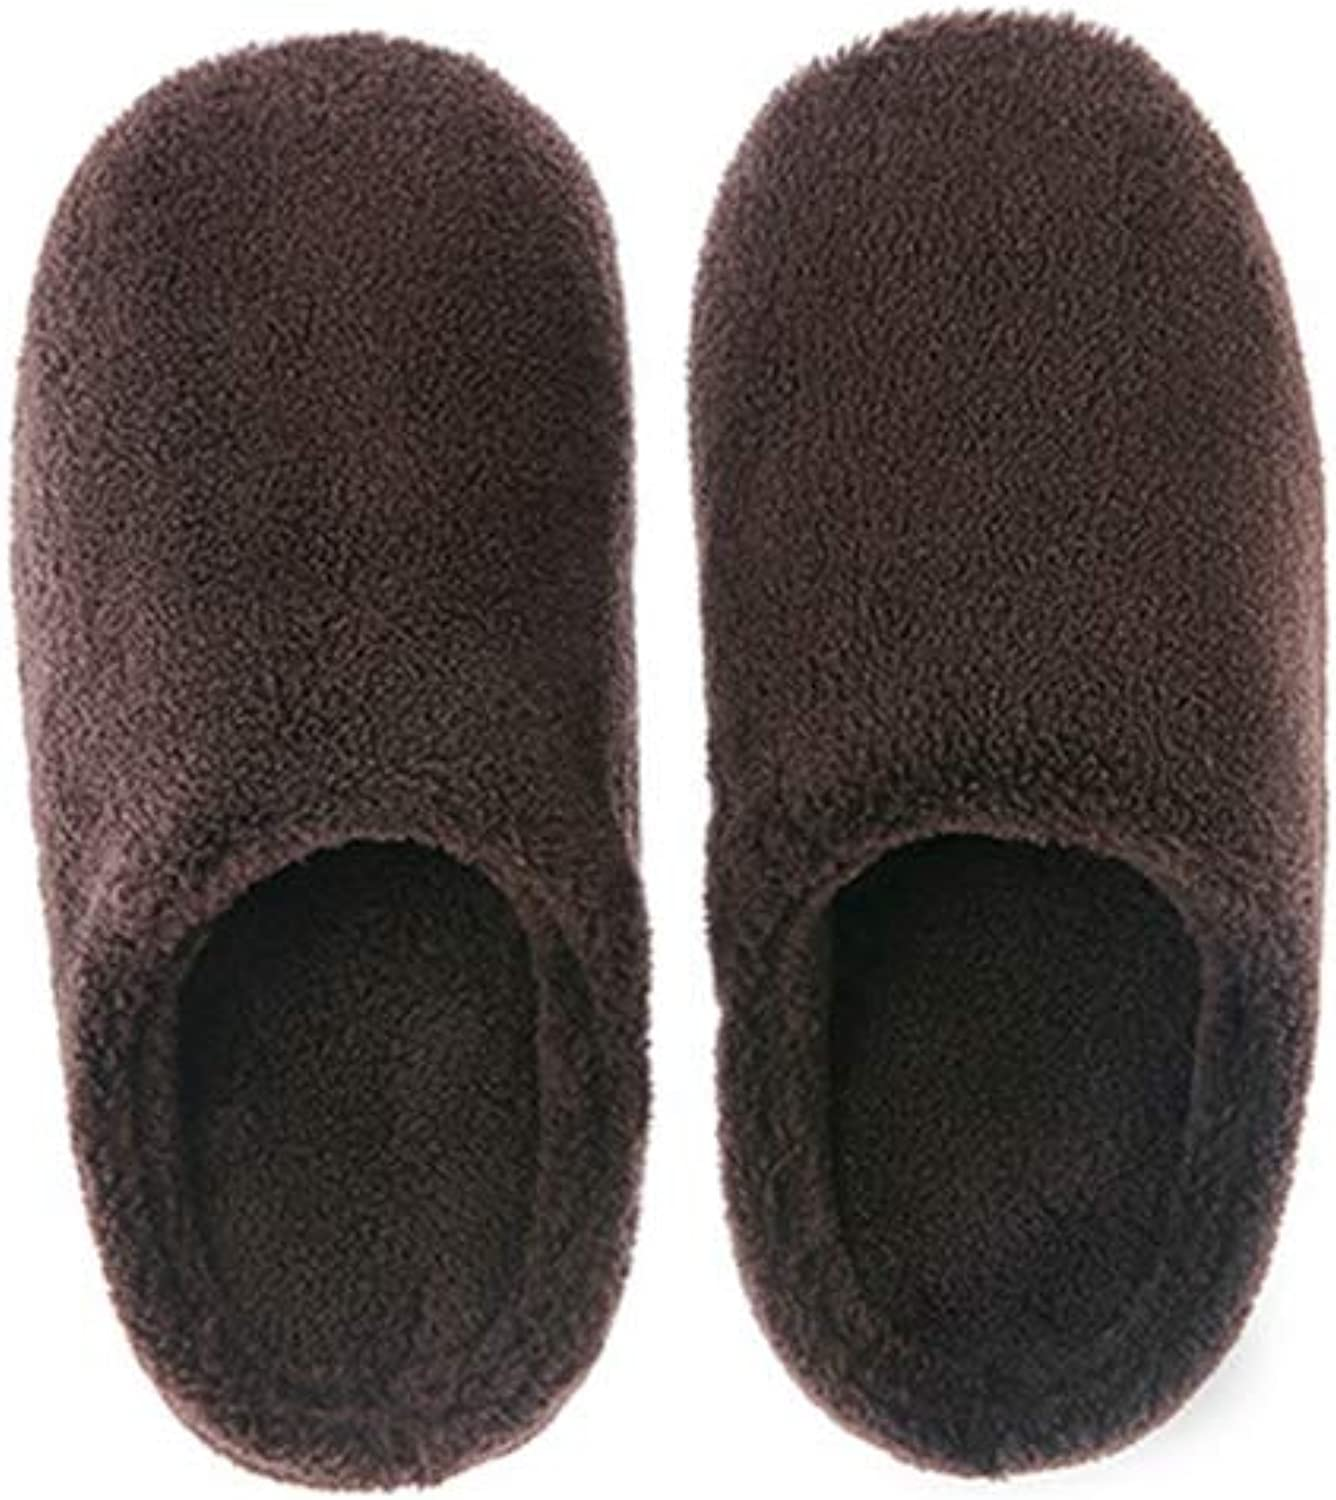 T-JULY Womens Ladies Slip-On Slippers Coral Velvet Fuzzy Soft Plush Lining Warm Fluffy Non-Slip Indoor House shoes